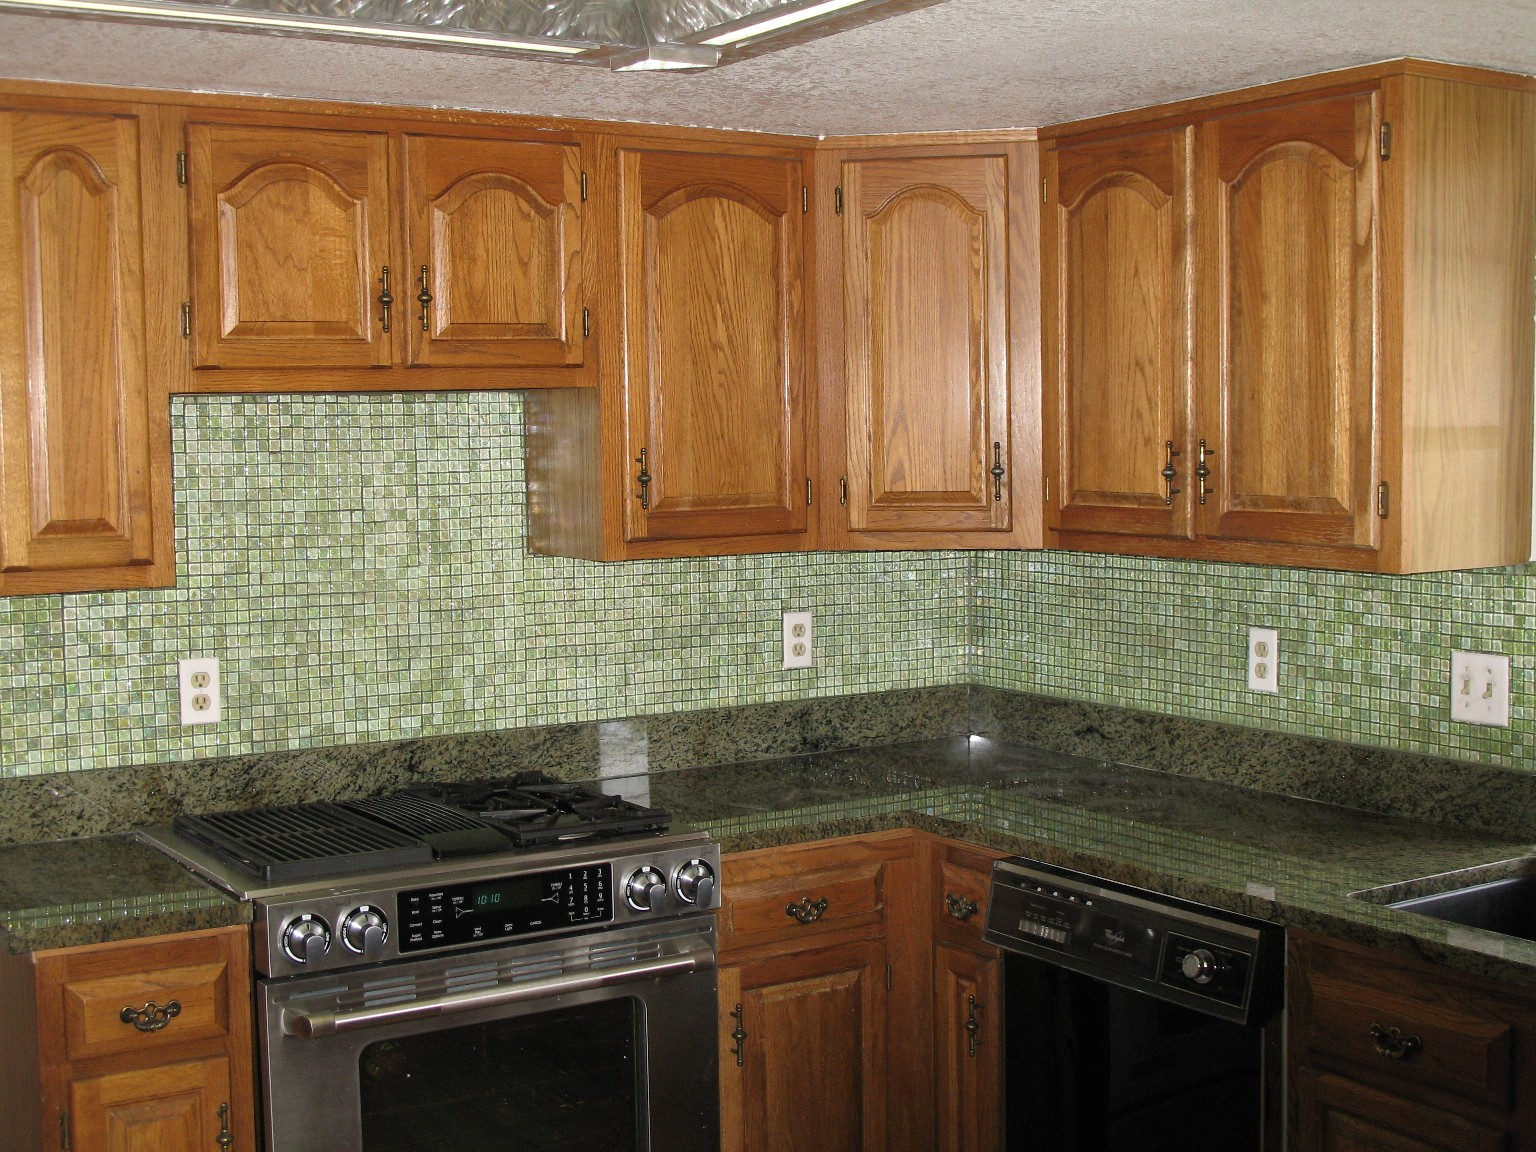 kitchen backsplash tiles ideas on budget kitchen backsplash tile Kitchen backsplash ideas